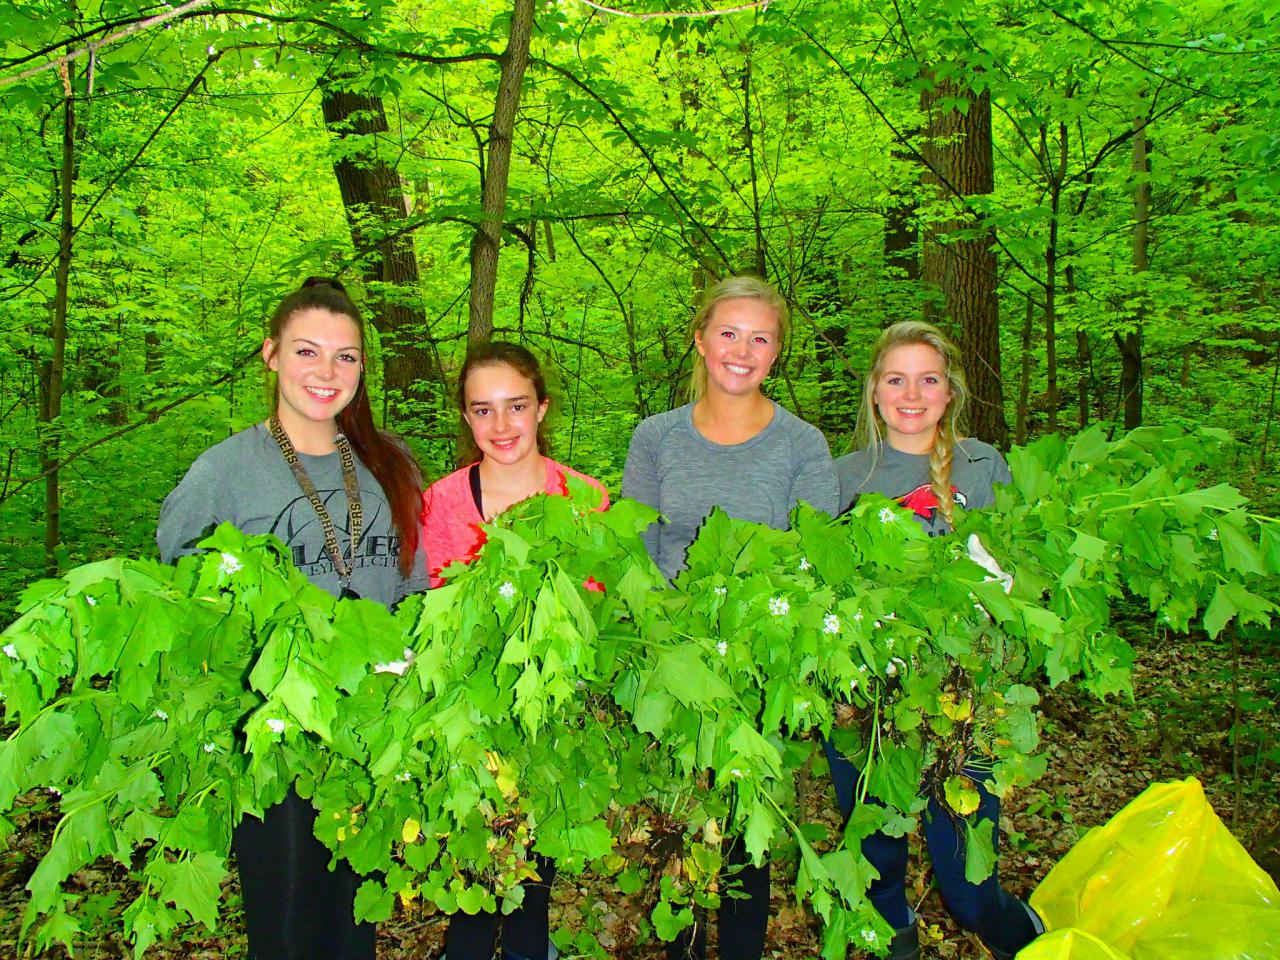 Volunteers holding garlic mustard at the Sand Flats